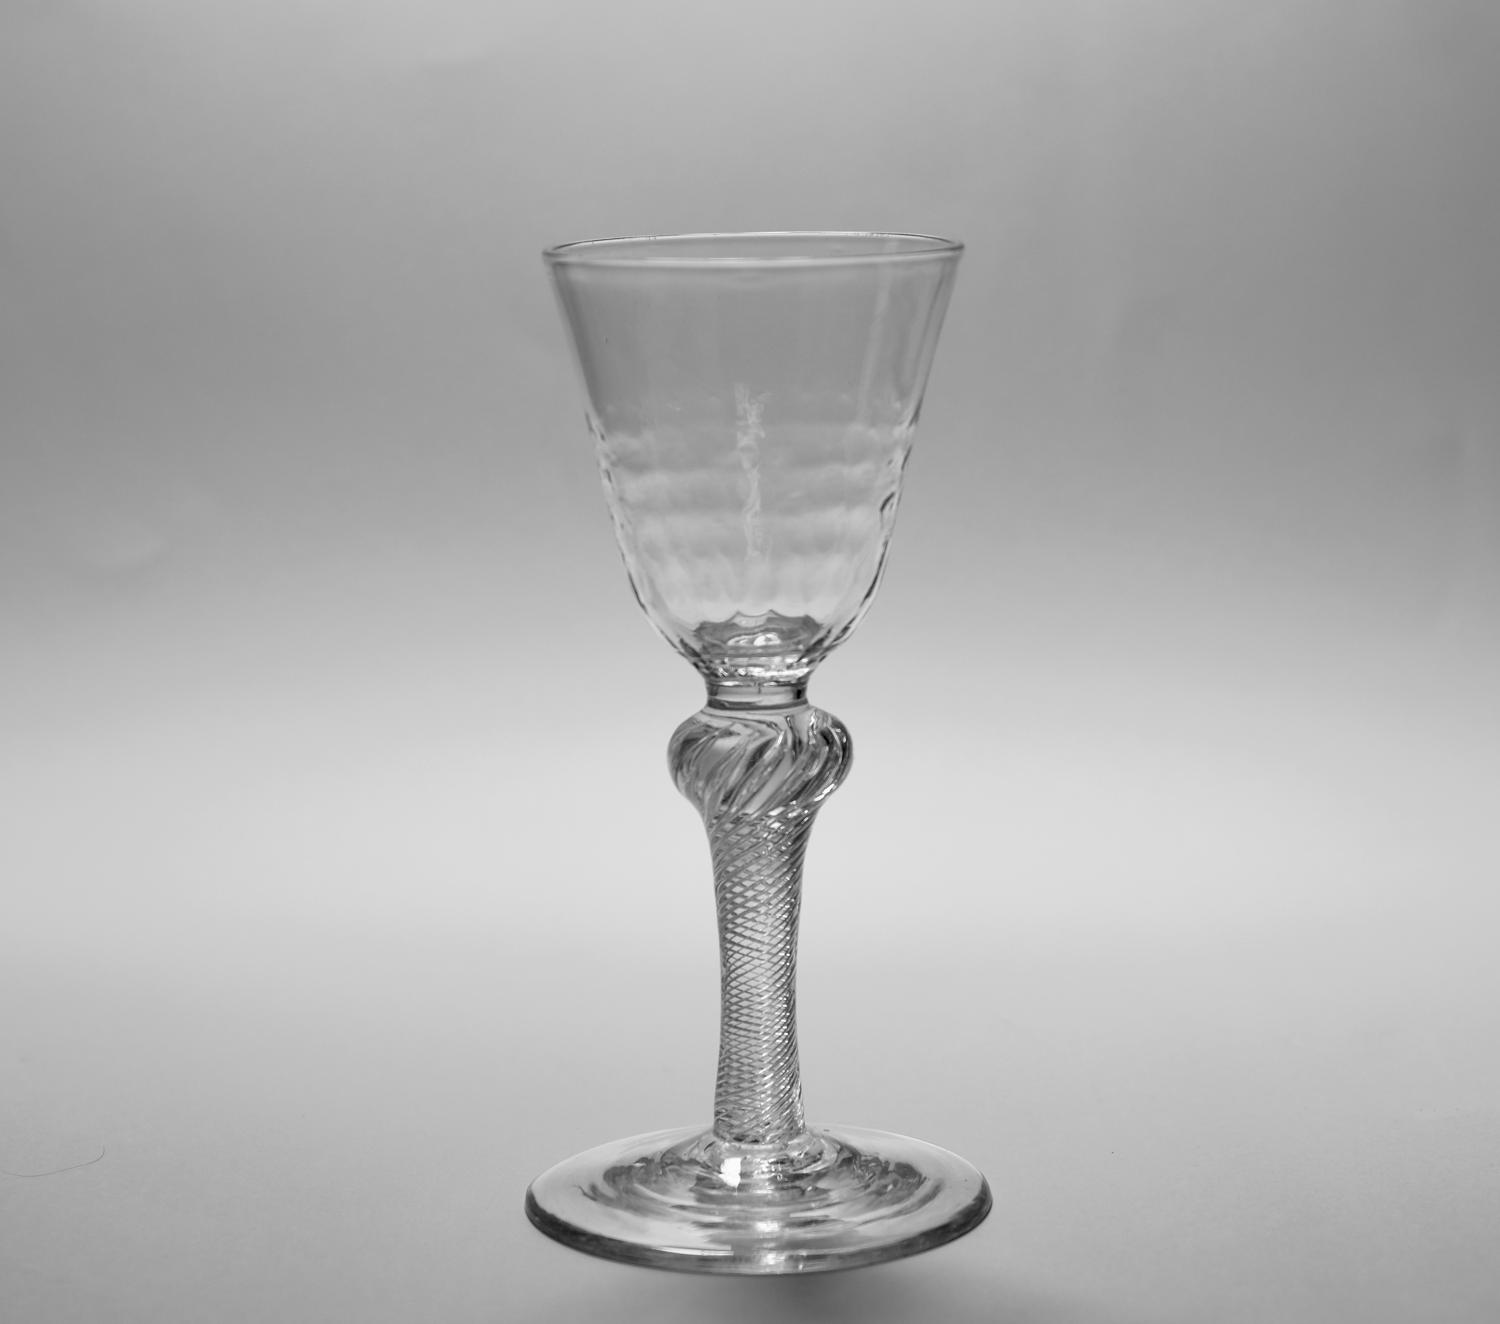 Multi spiral air twist wine glass C1755